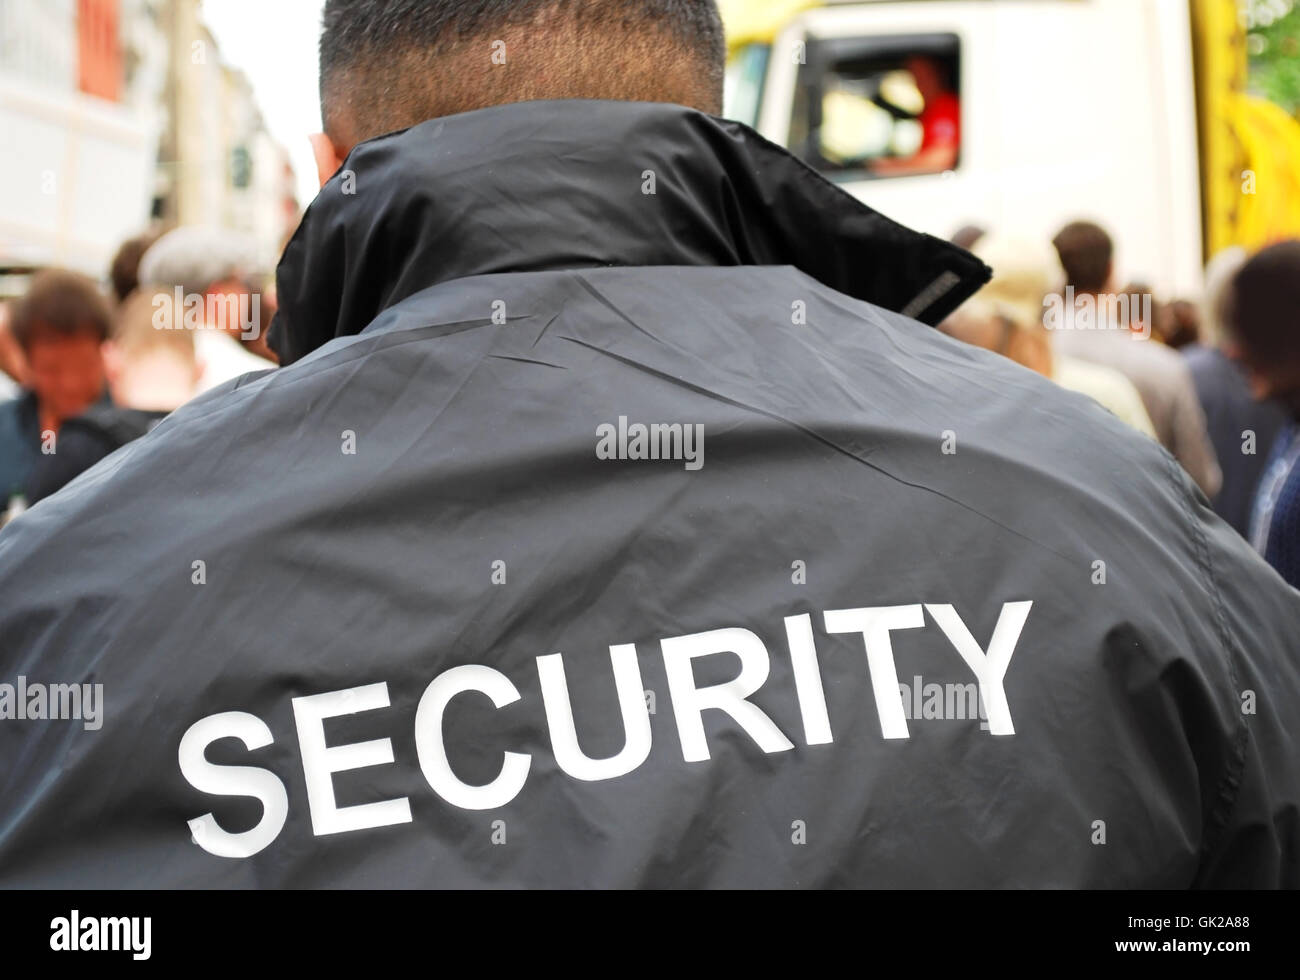 security safety humans - Stock Image